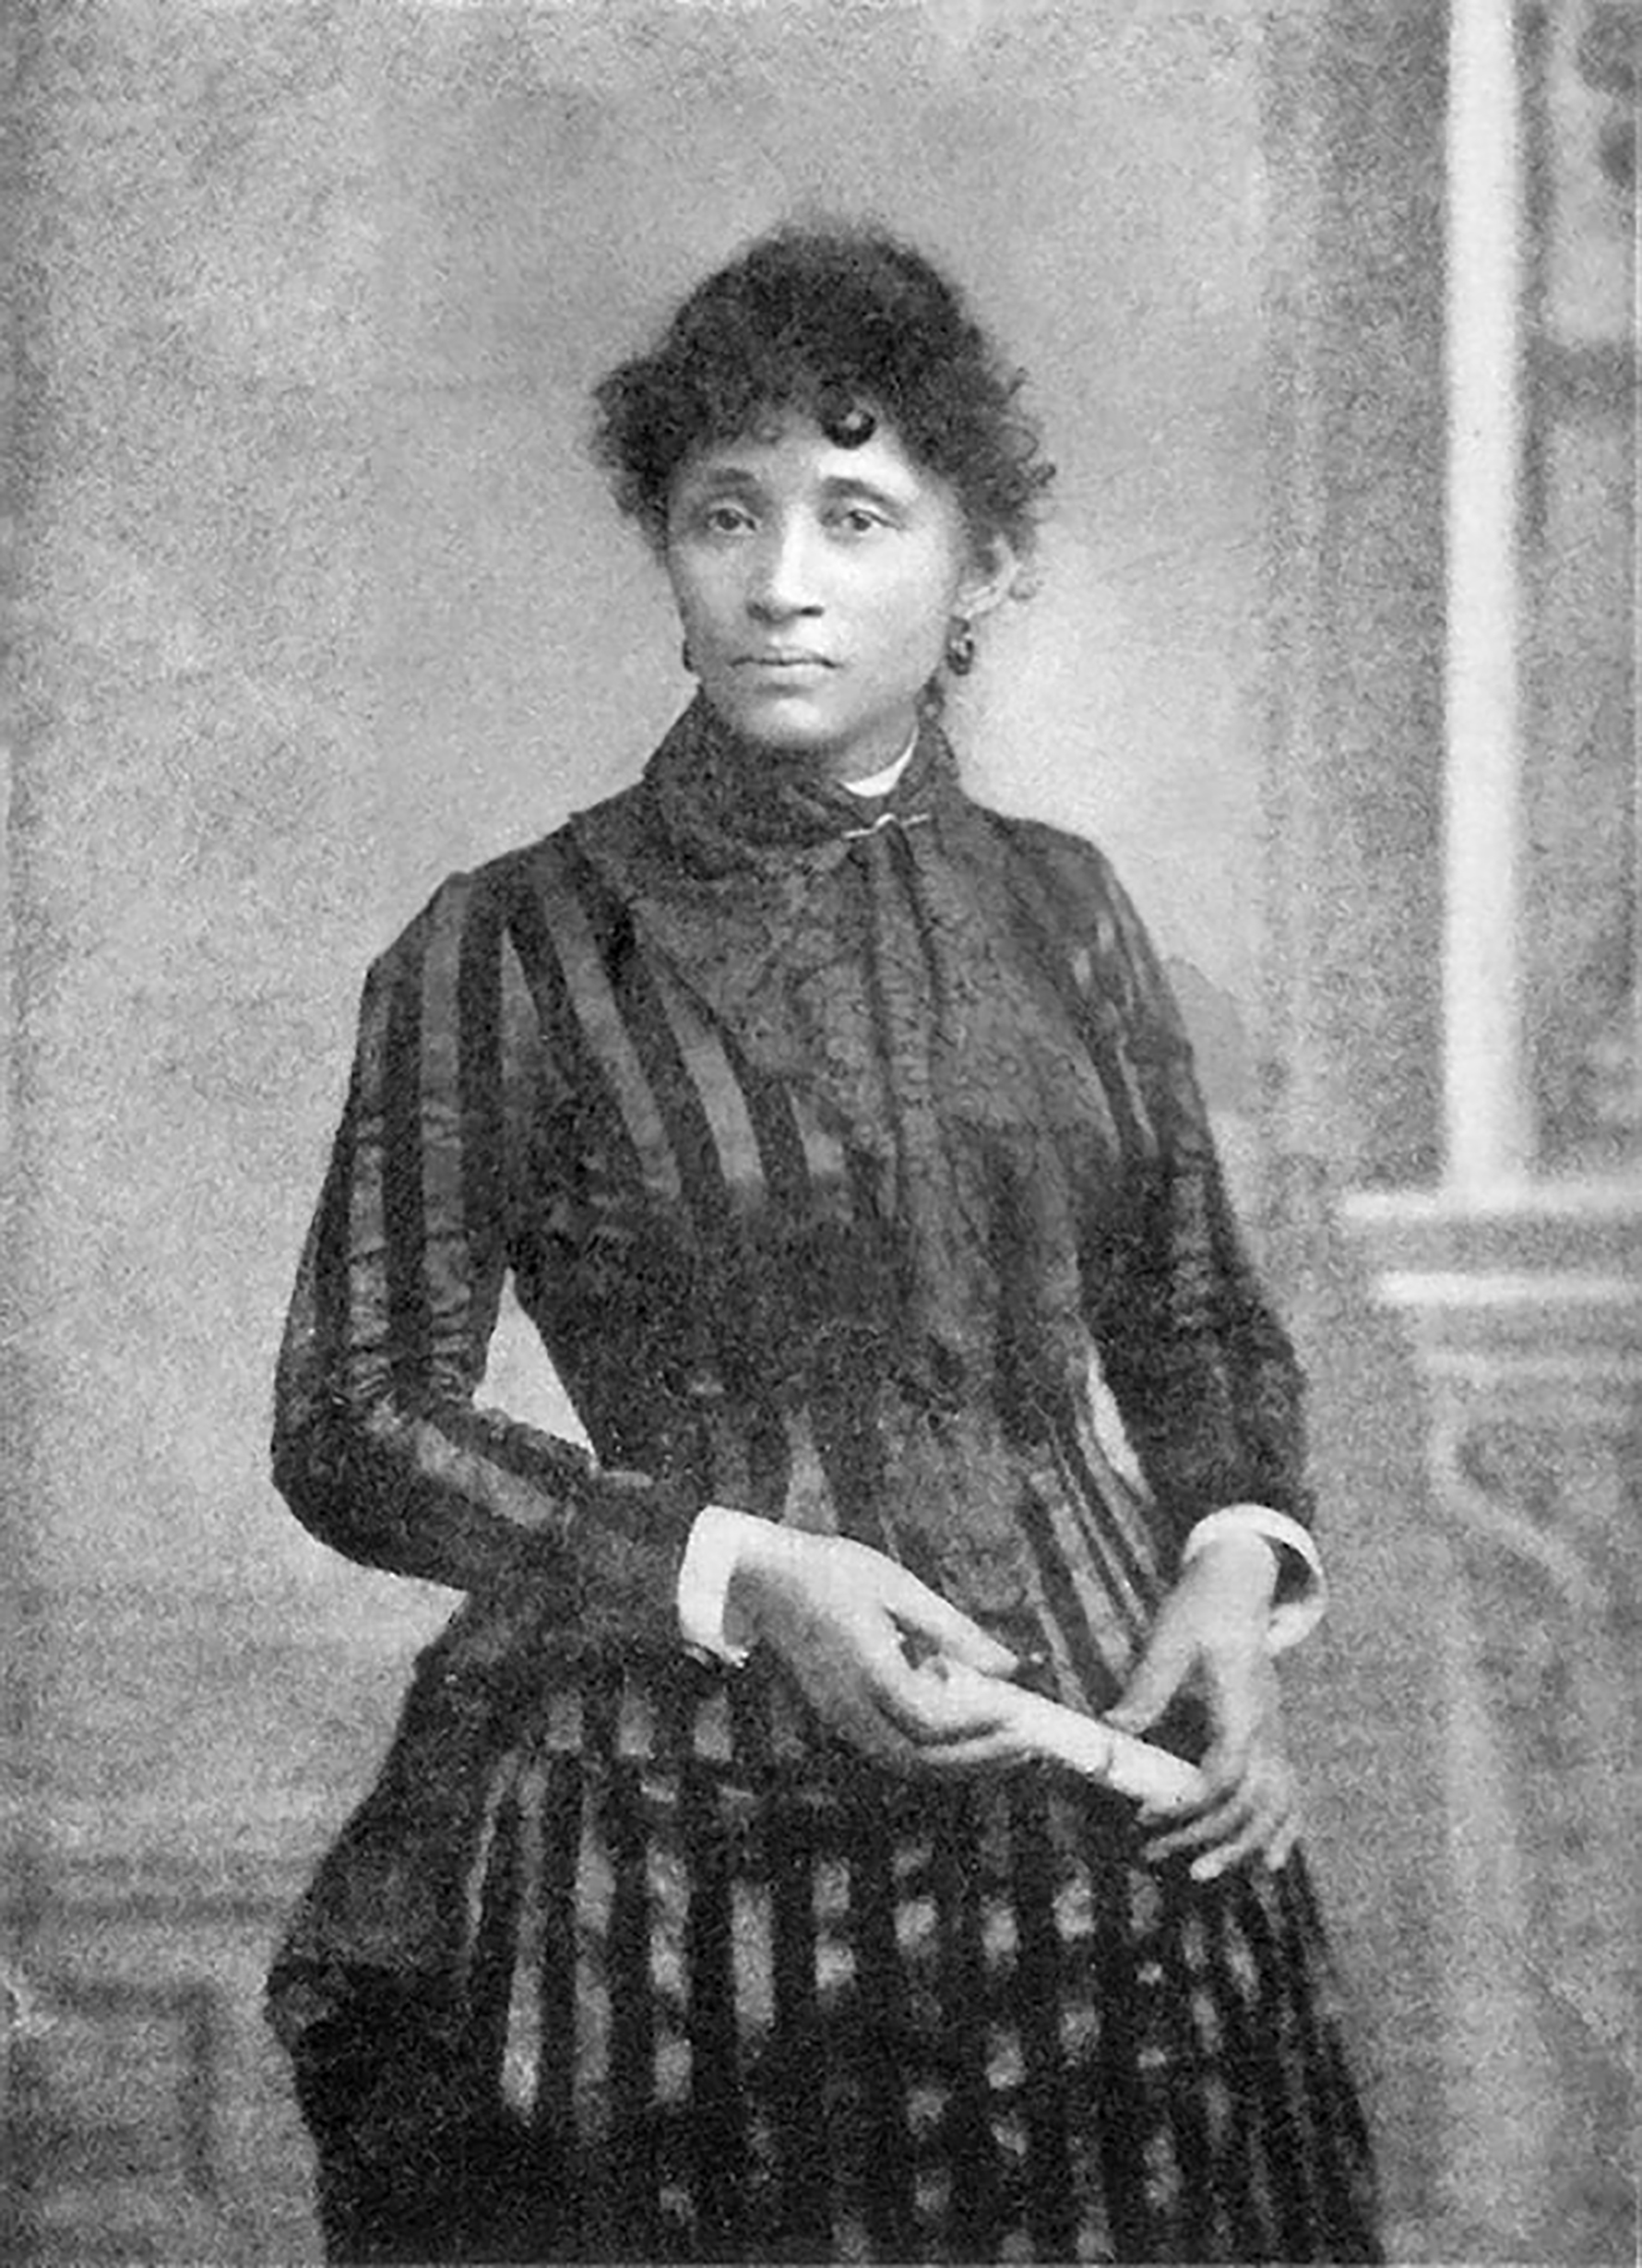 Black-and-white photo of activist and IWW member Lucy Parsons